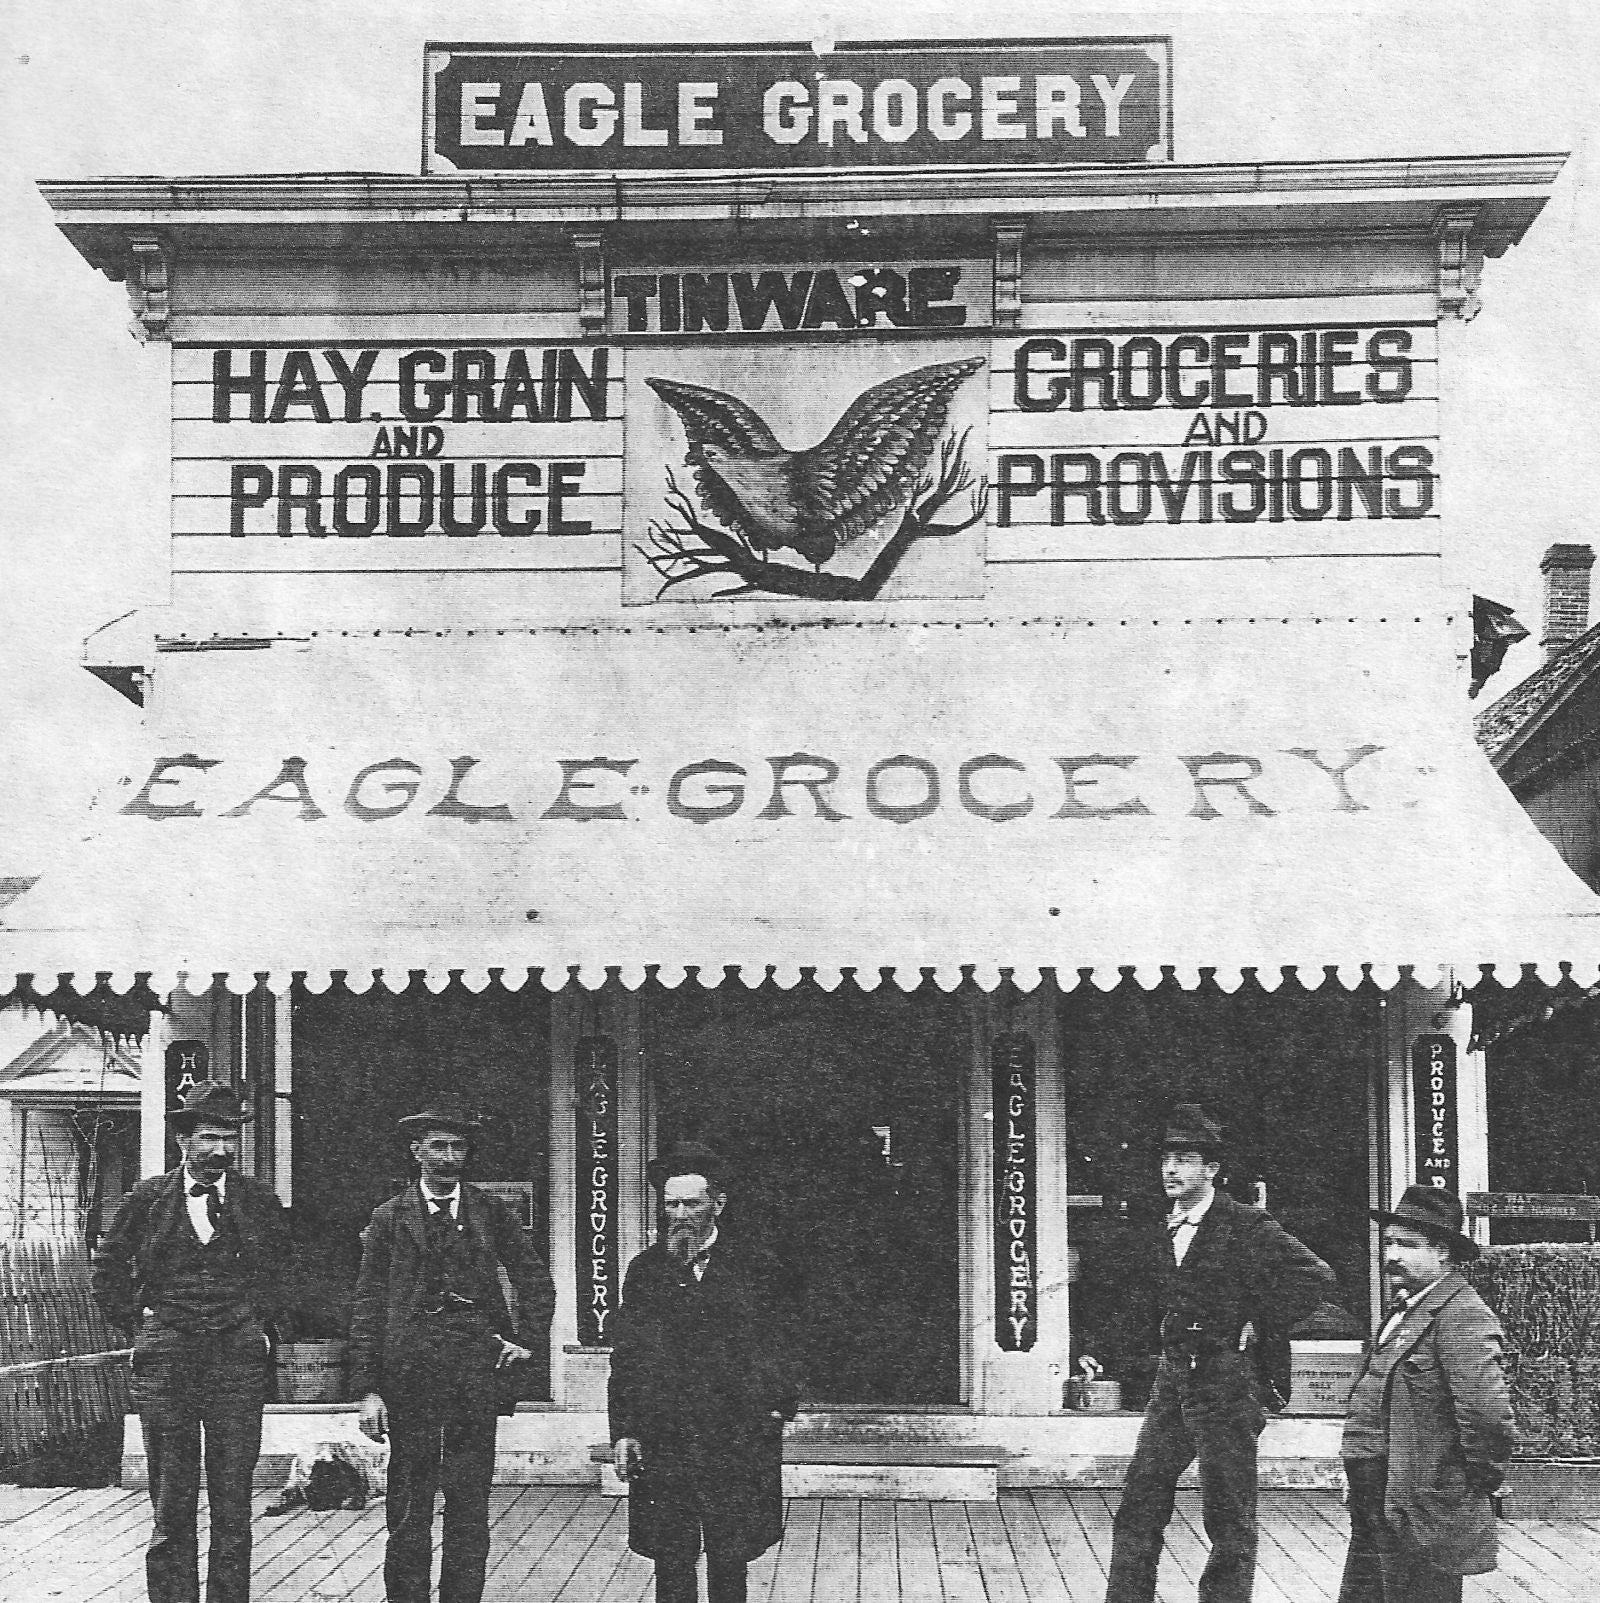 The Eagle Grocery